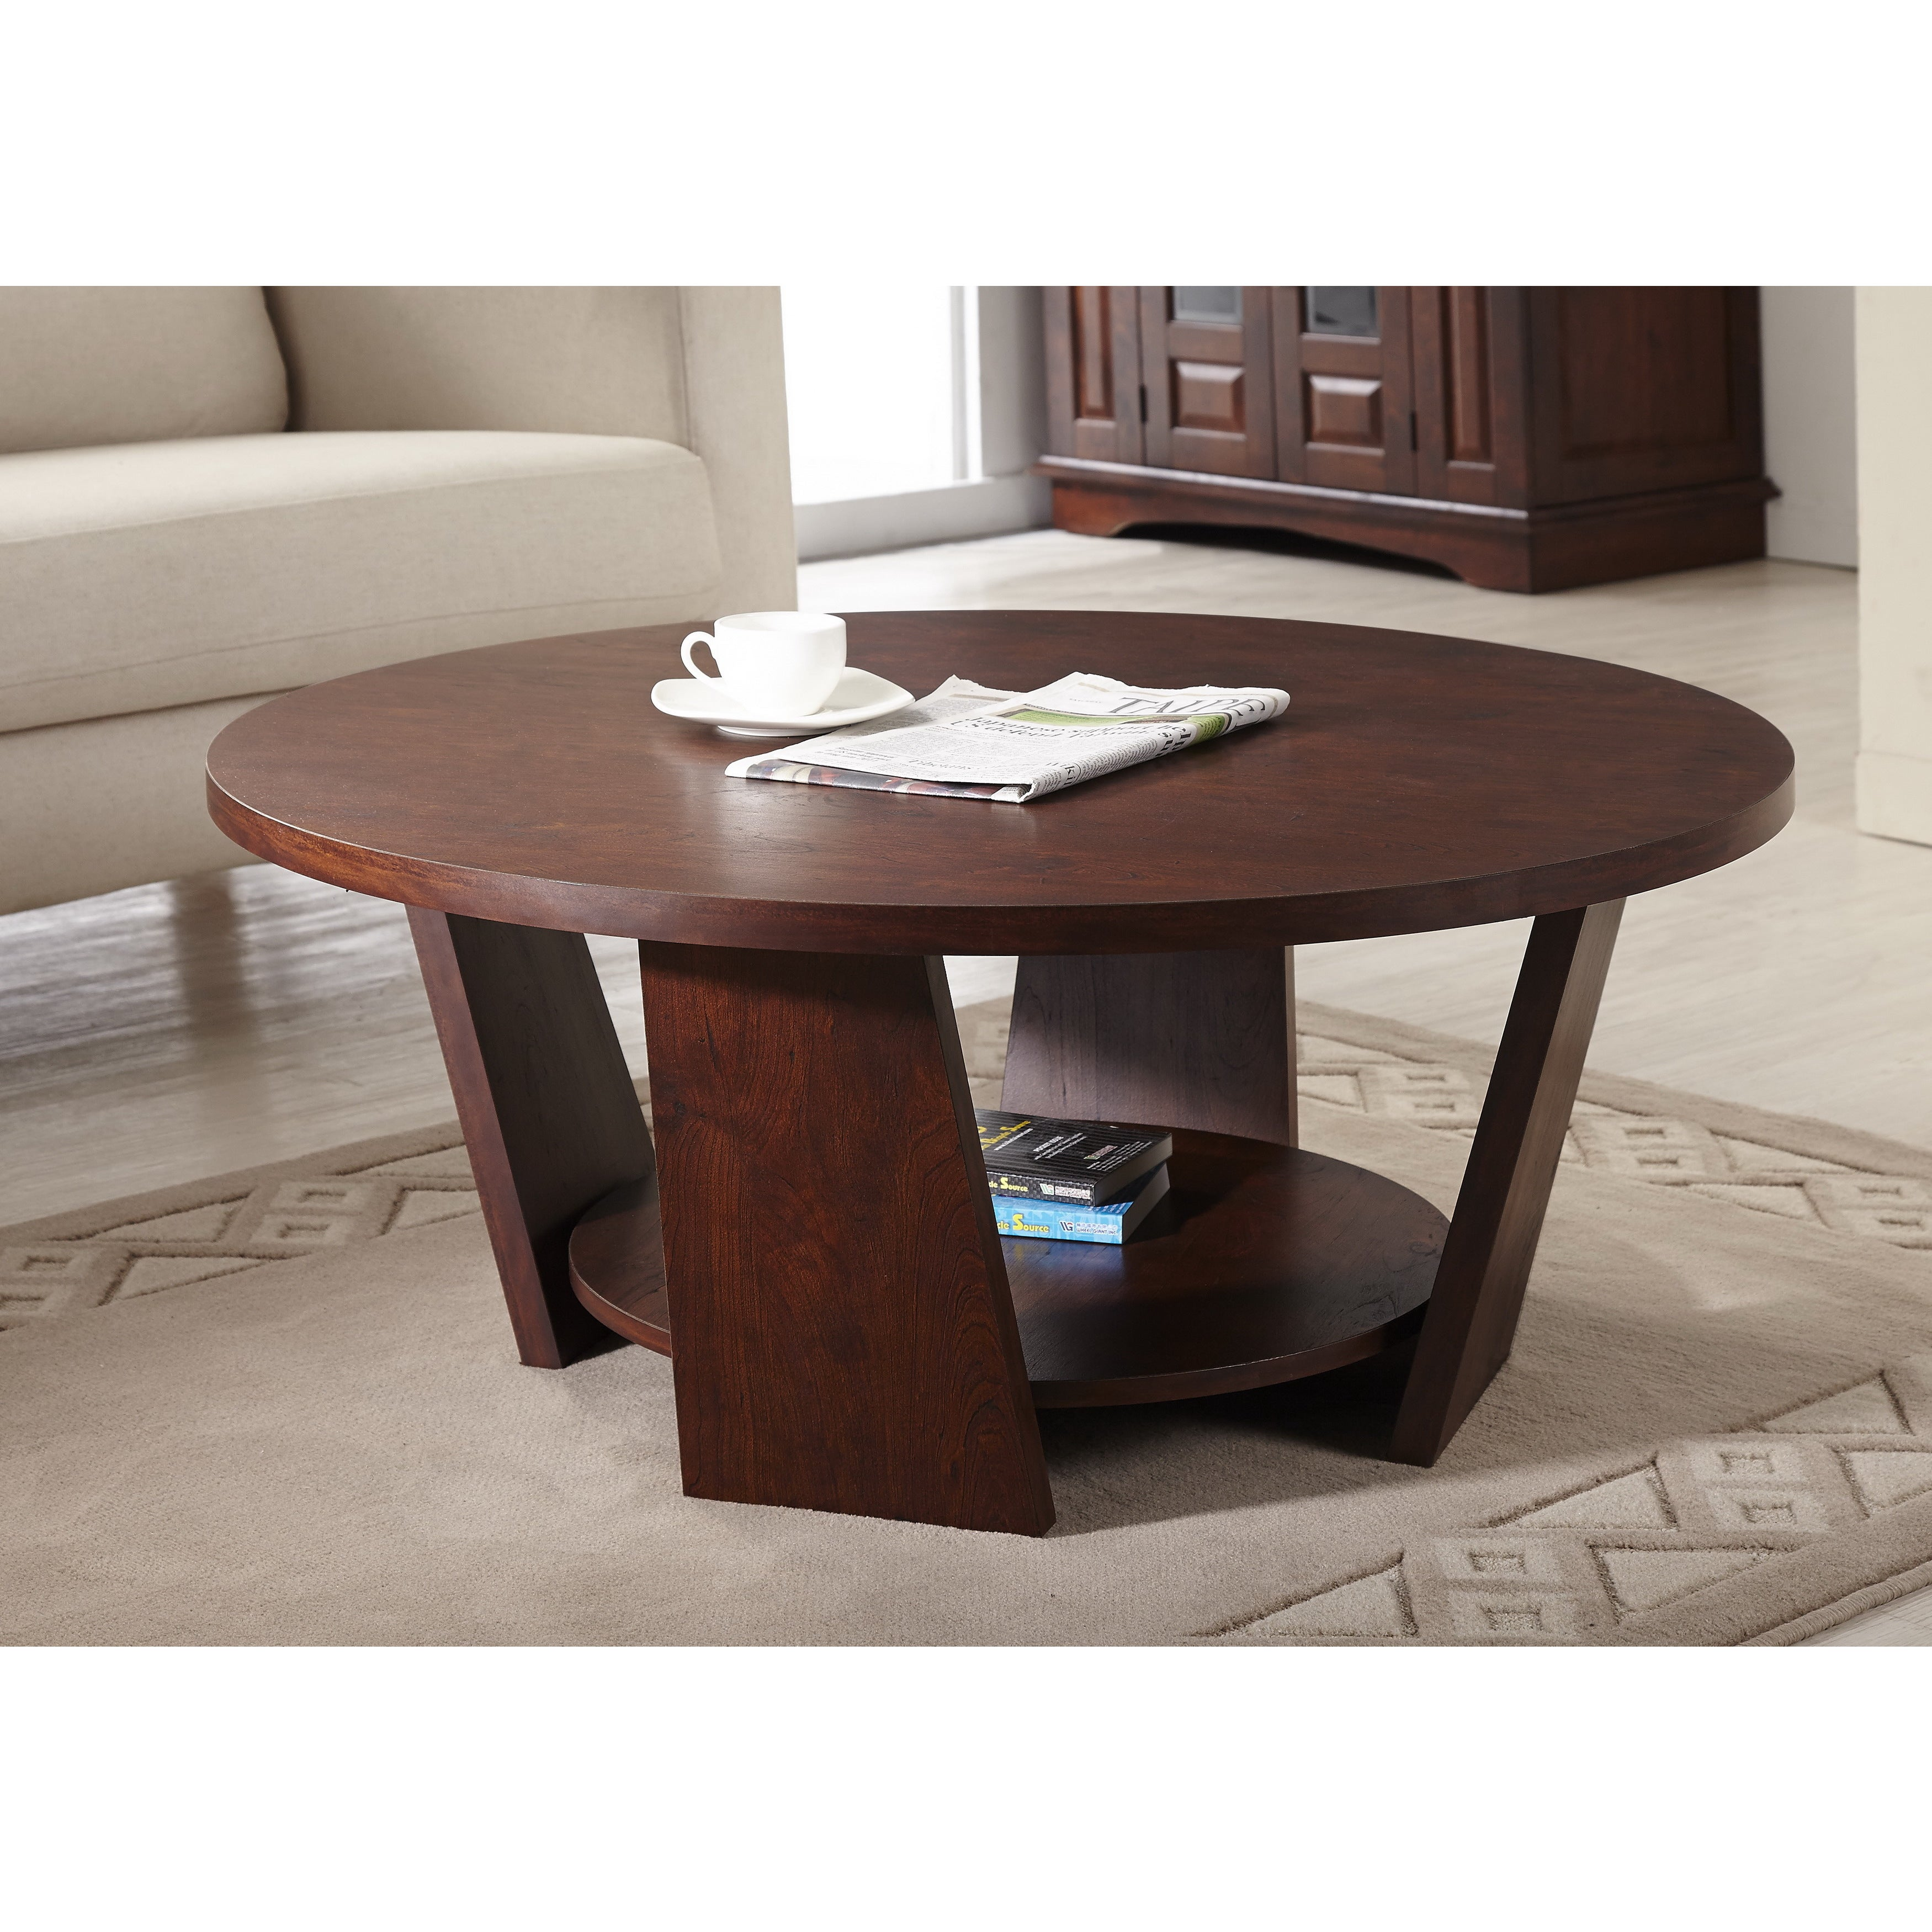 Small Coffee Tables Home Bargains: Furniture Of America 'Amber' Round Vintage Walnut Coffee